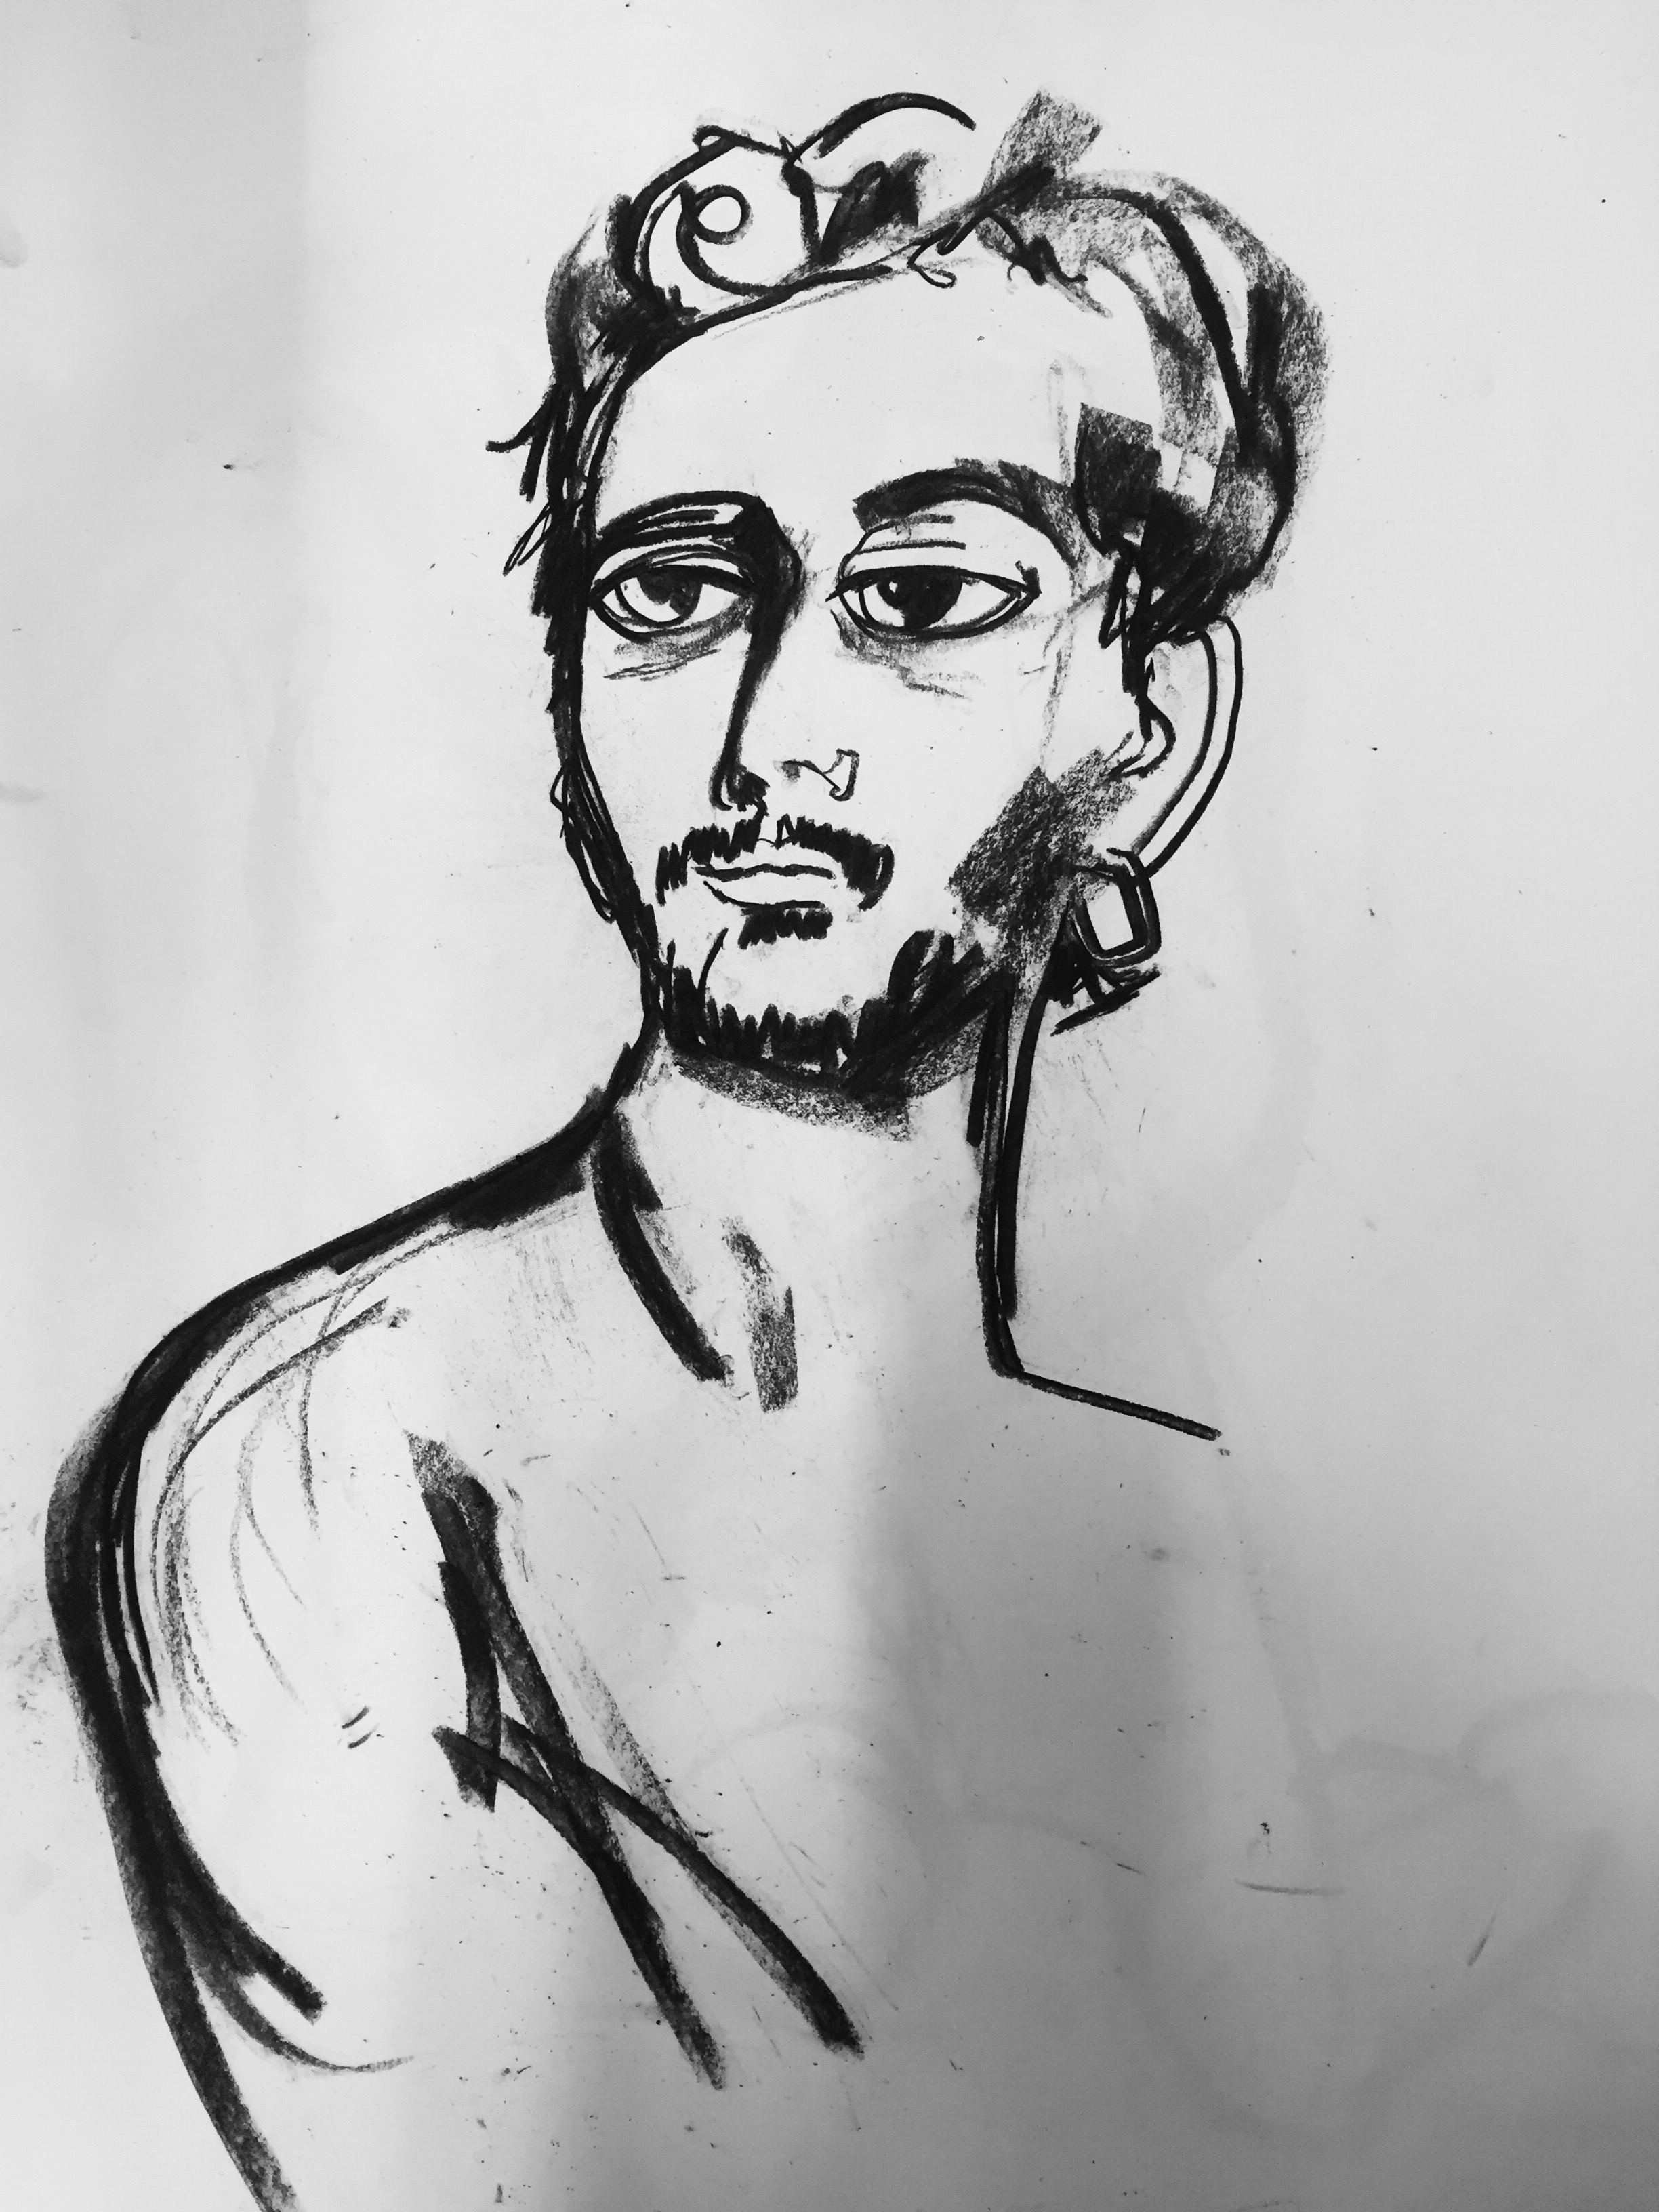 Charcoal on paper (60 x 50cm)